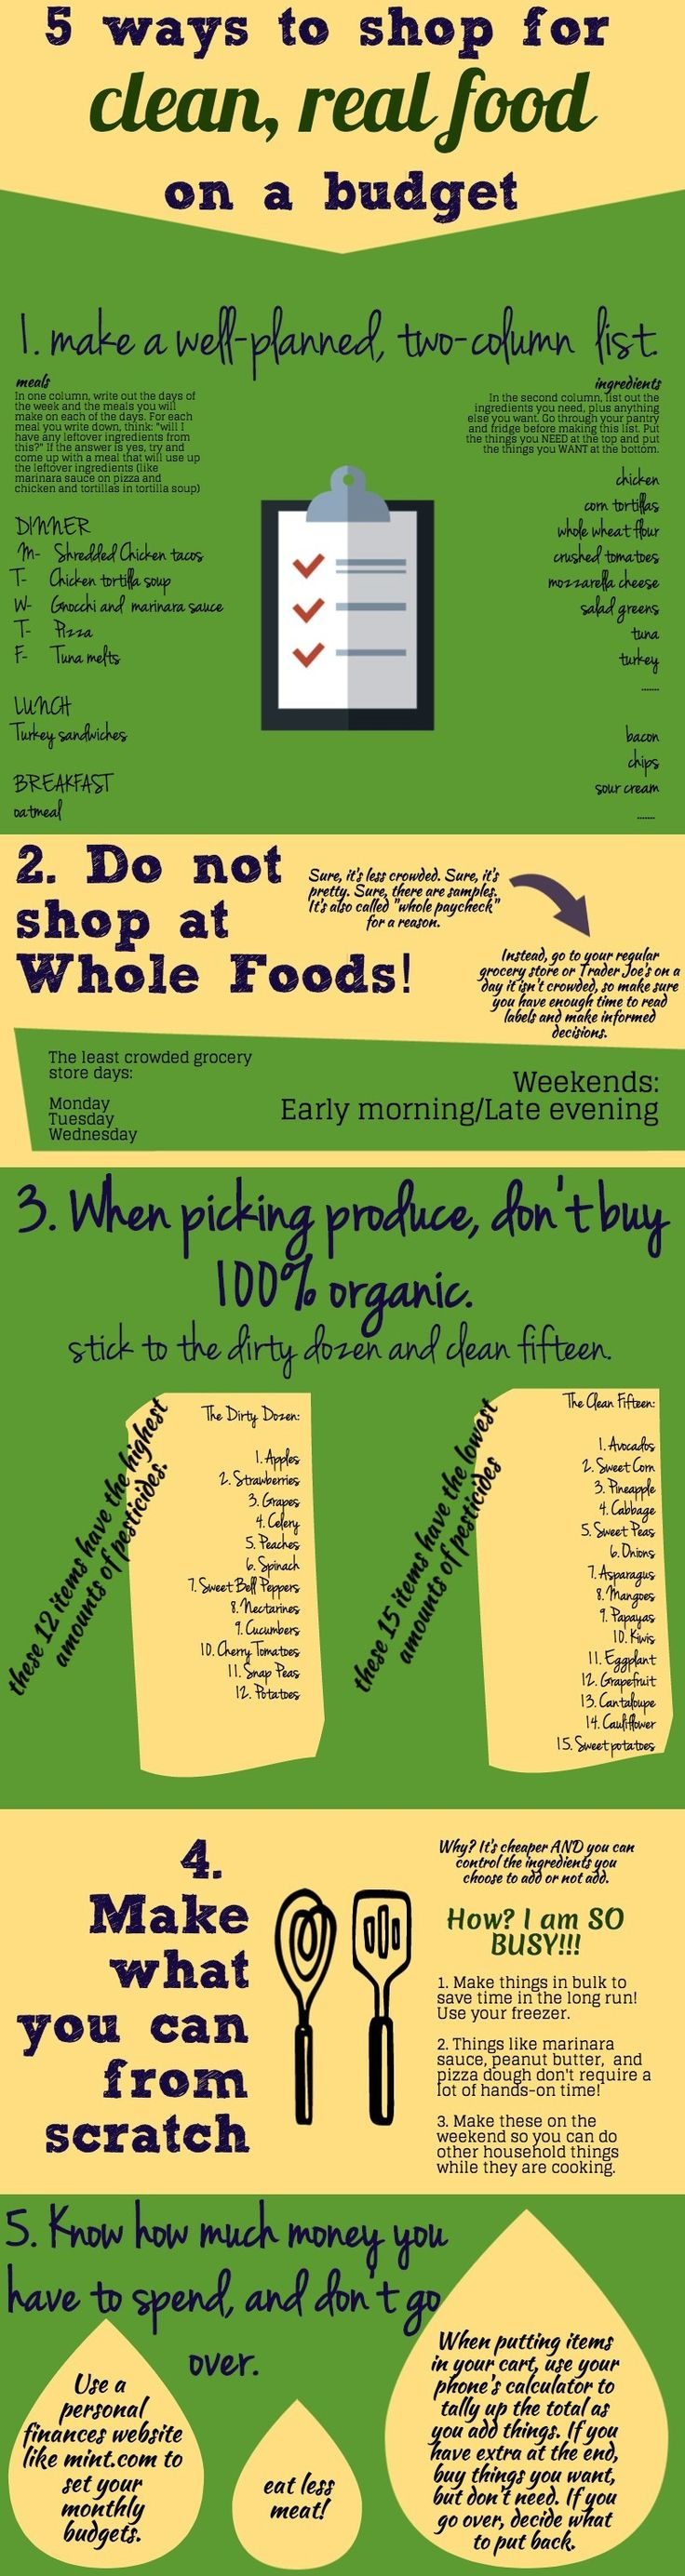 5 ways to shop for clean real food on a budget #cleaneating #realfood #budget